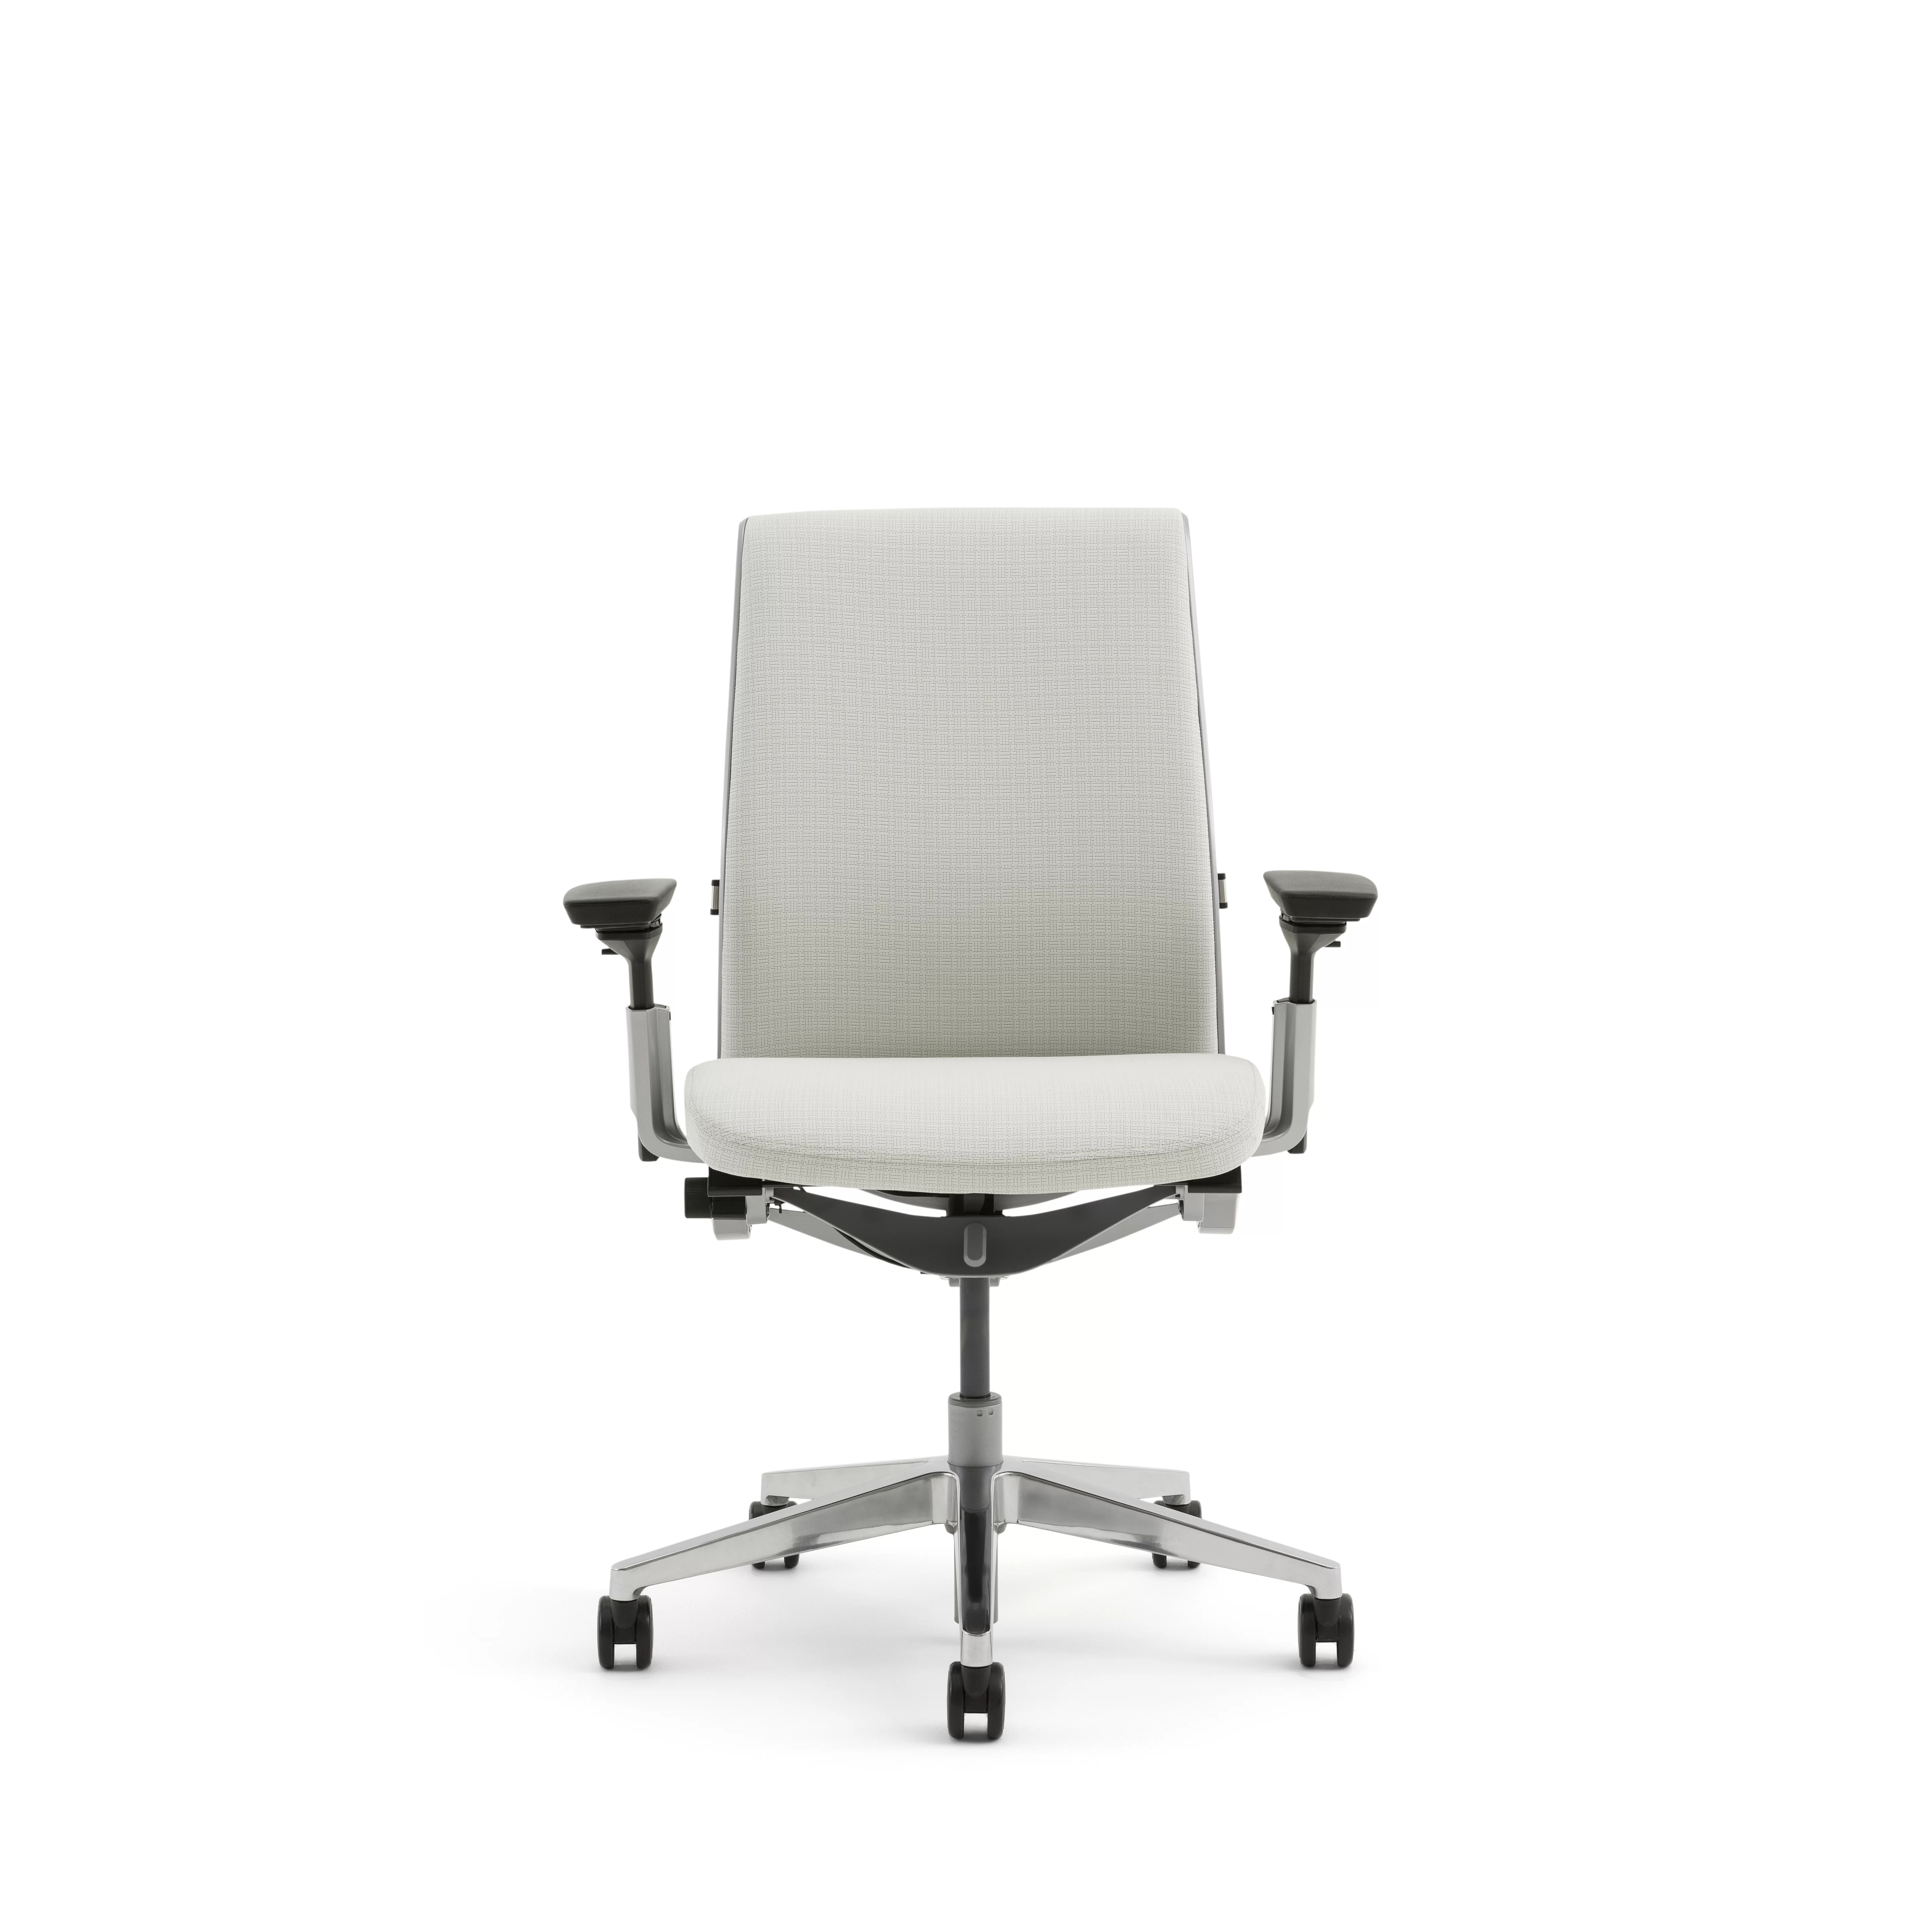 Steelcase Desk Chair Steelcase Think High Back Desk Chair And Reviews Wayfair